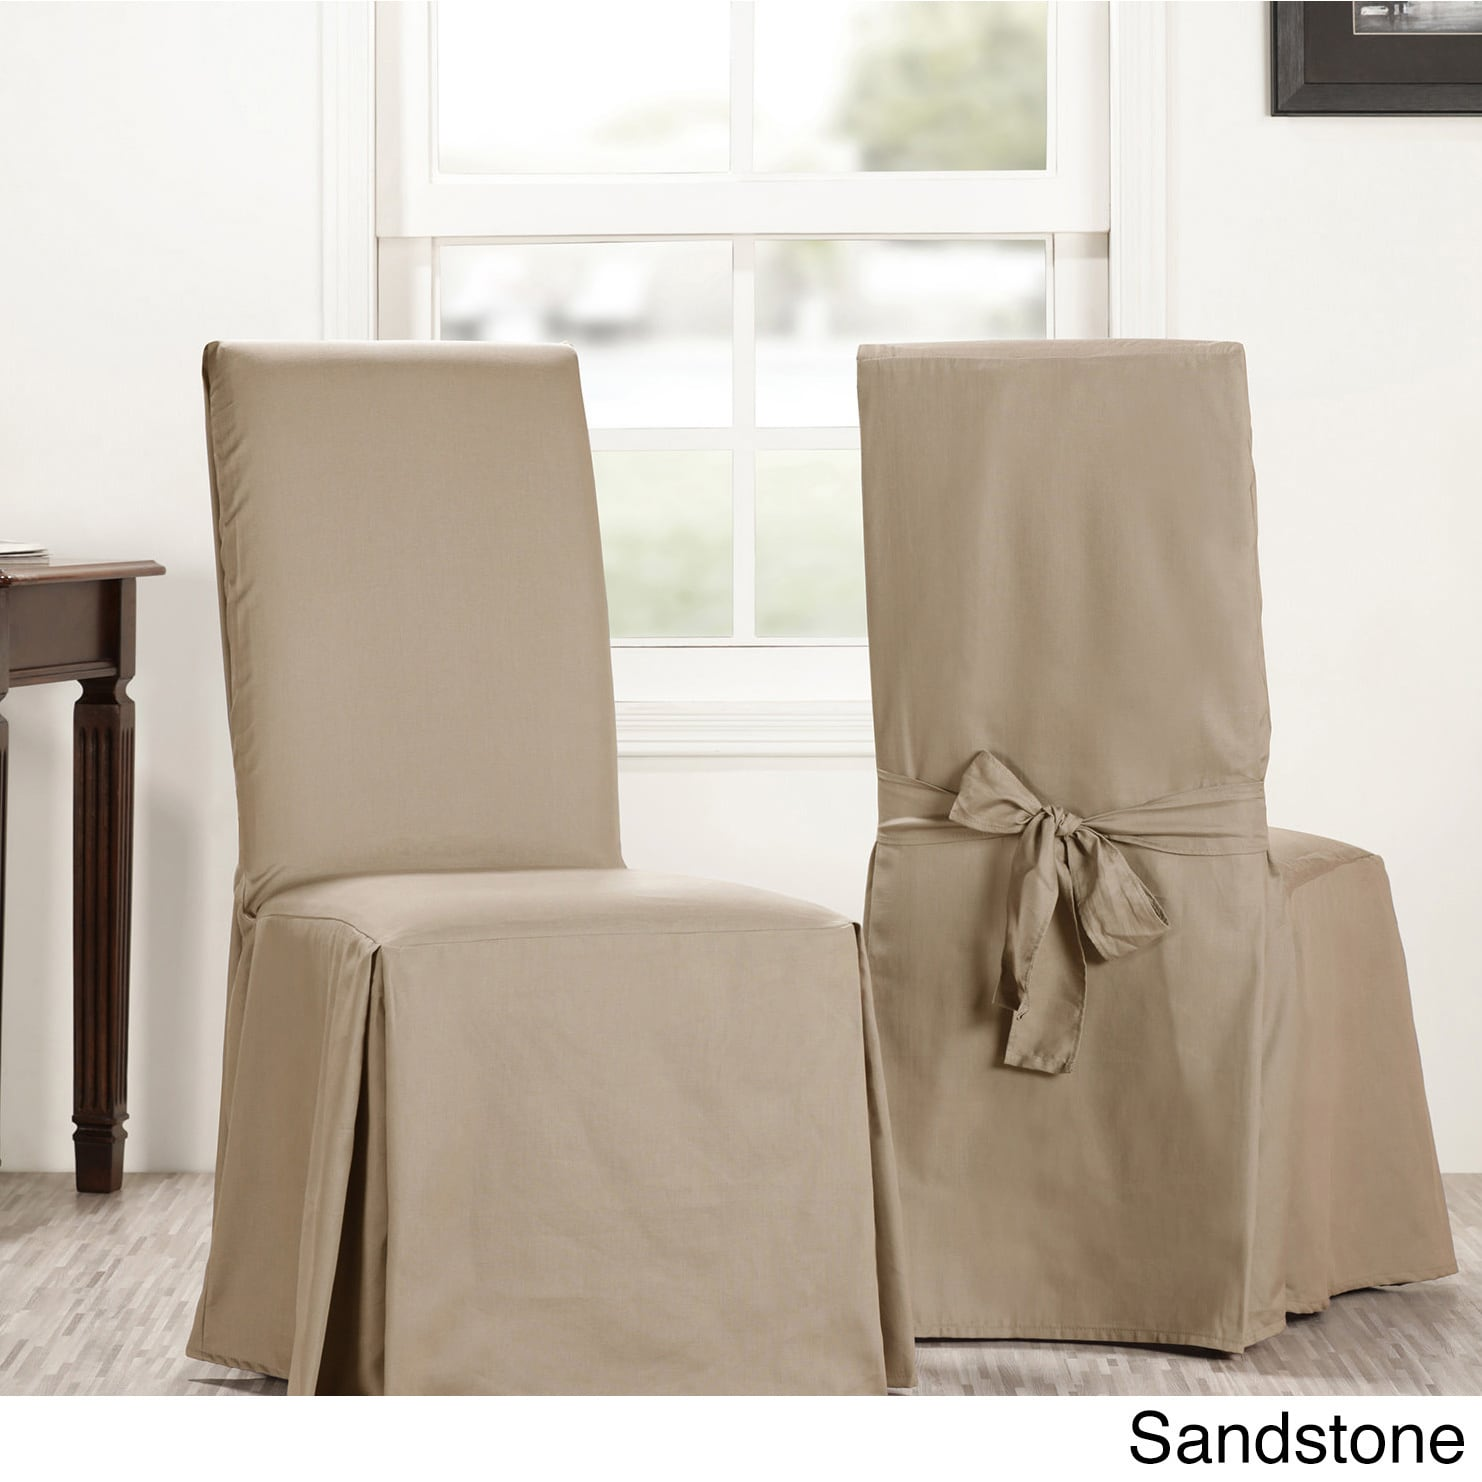 club chair covers dark grey dining chairs shop exclusive fabrics solid cotton sold as pair free shipping on orders over 45 overstock com 17754718